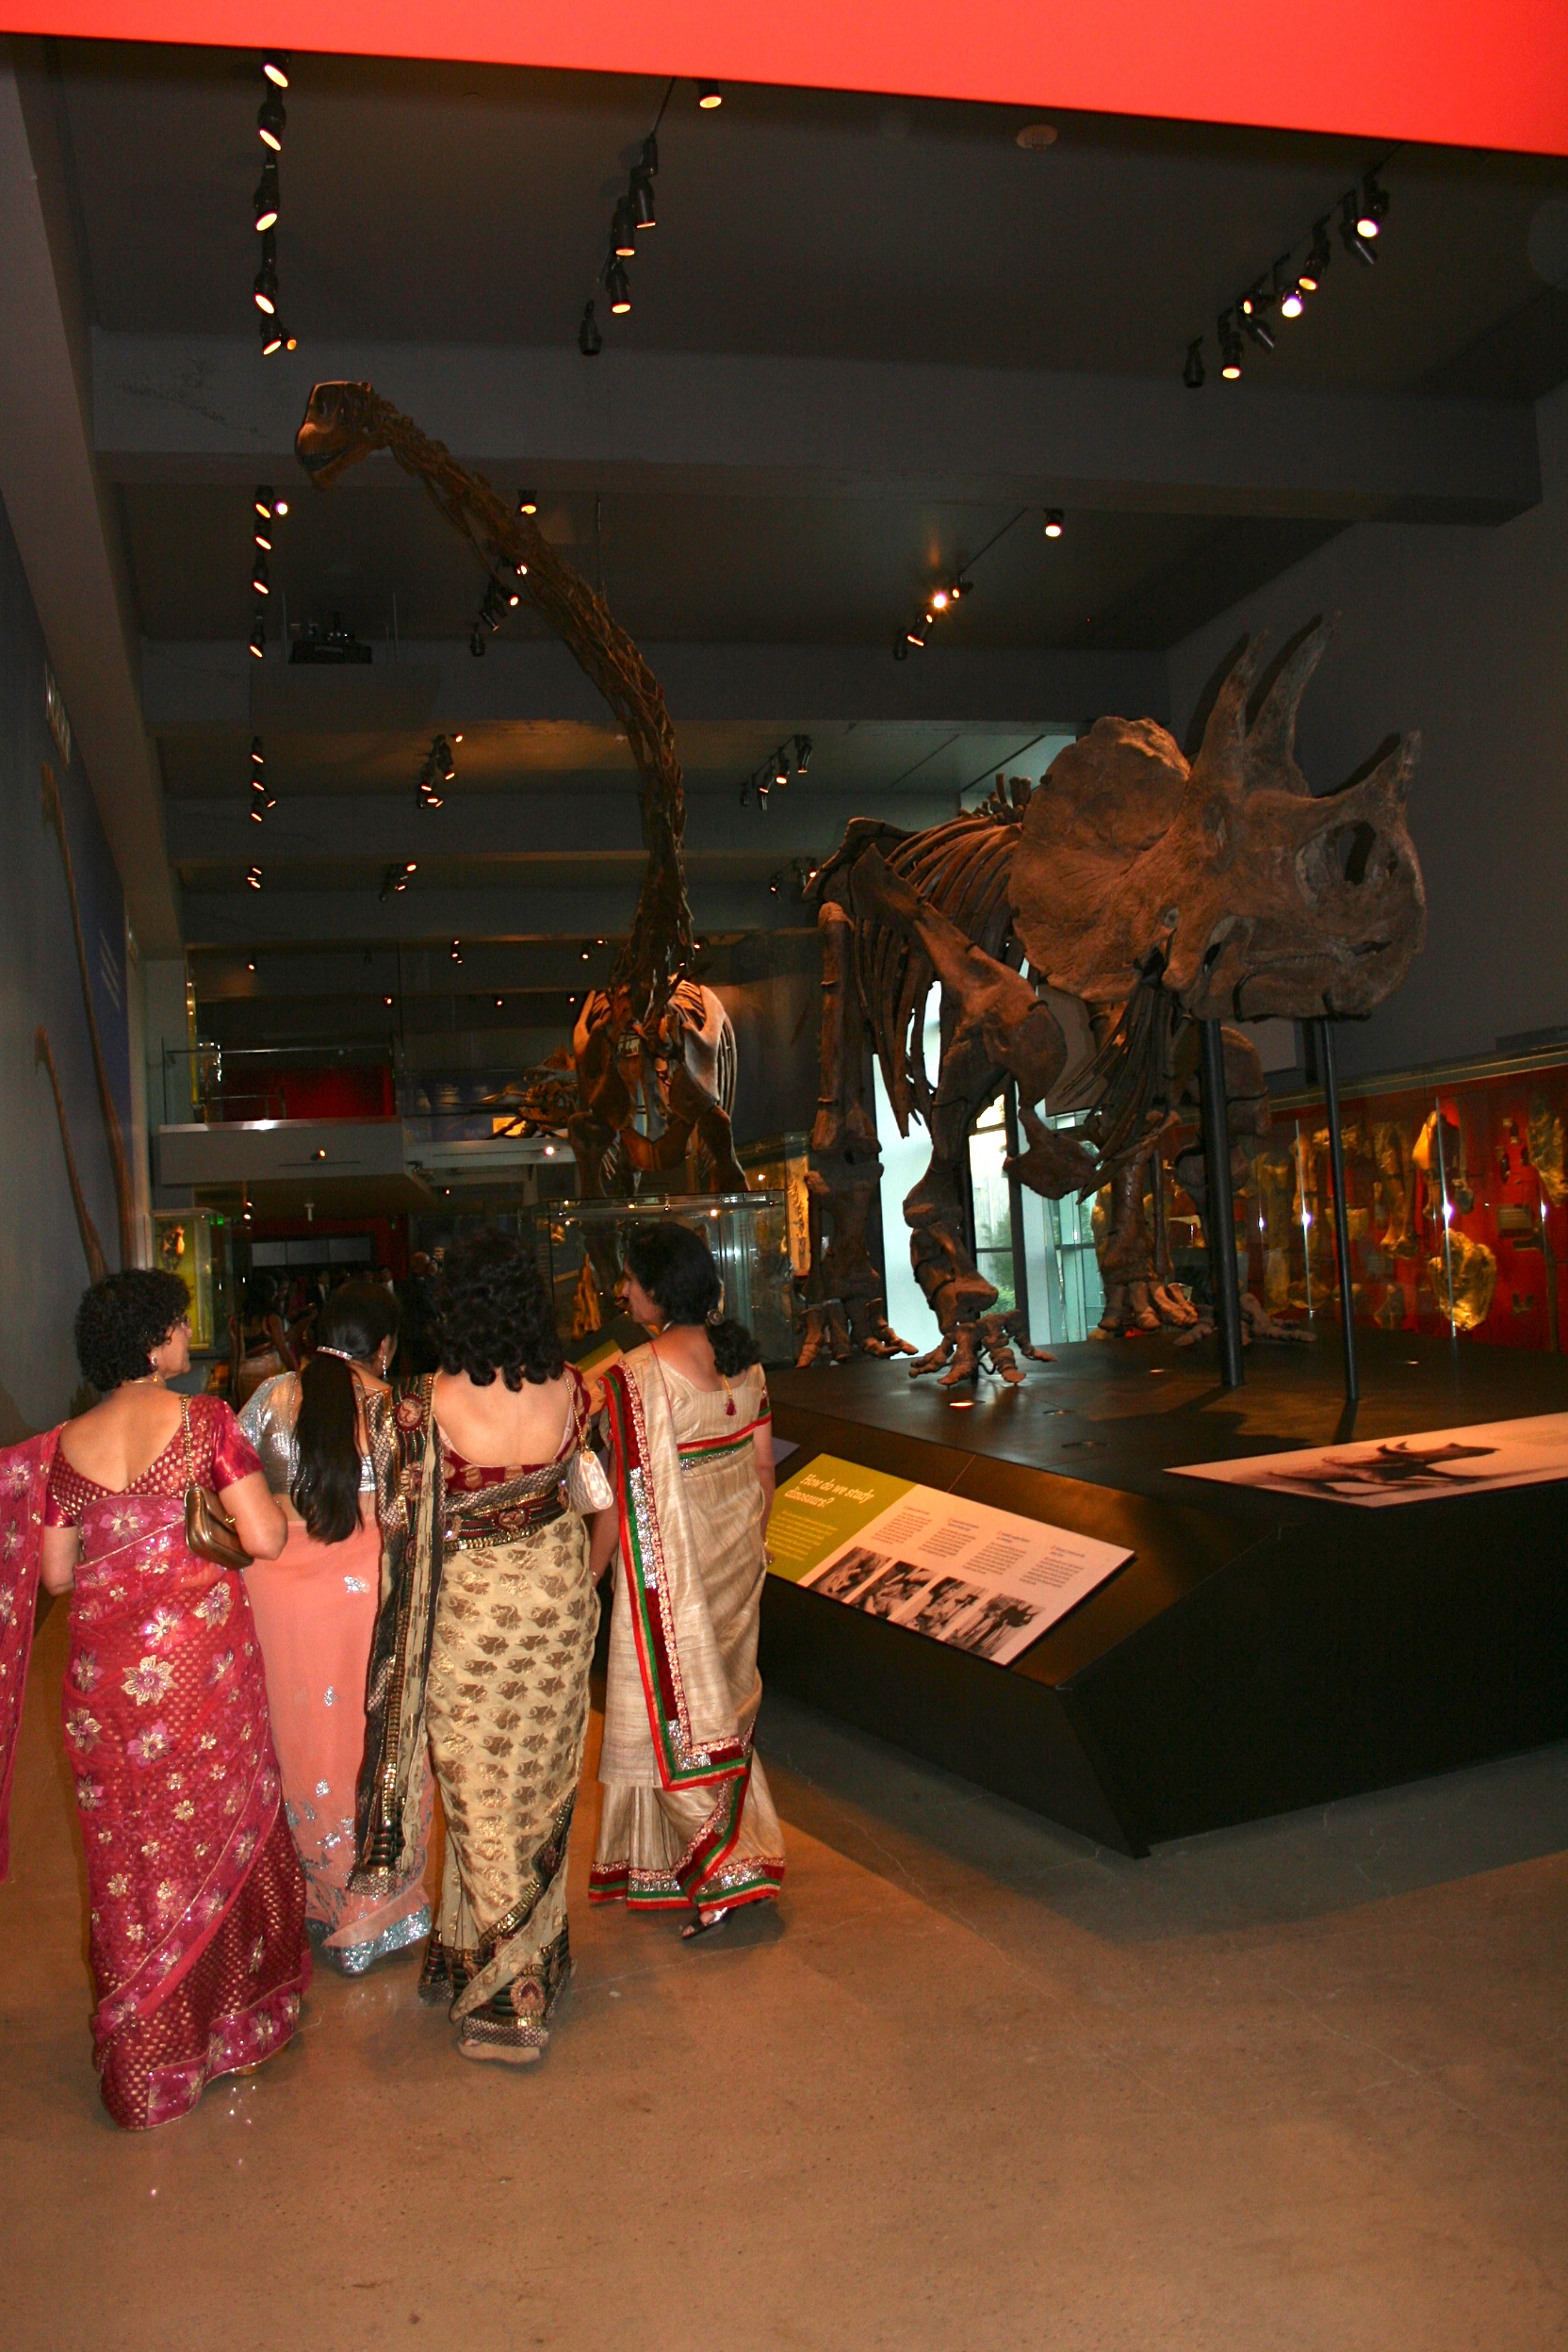 I just loved this photo. Beautiful women walking in a group amidst dinosaurs.